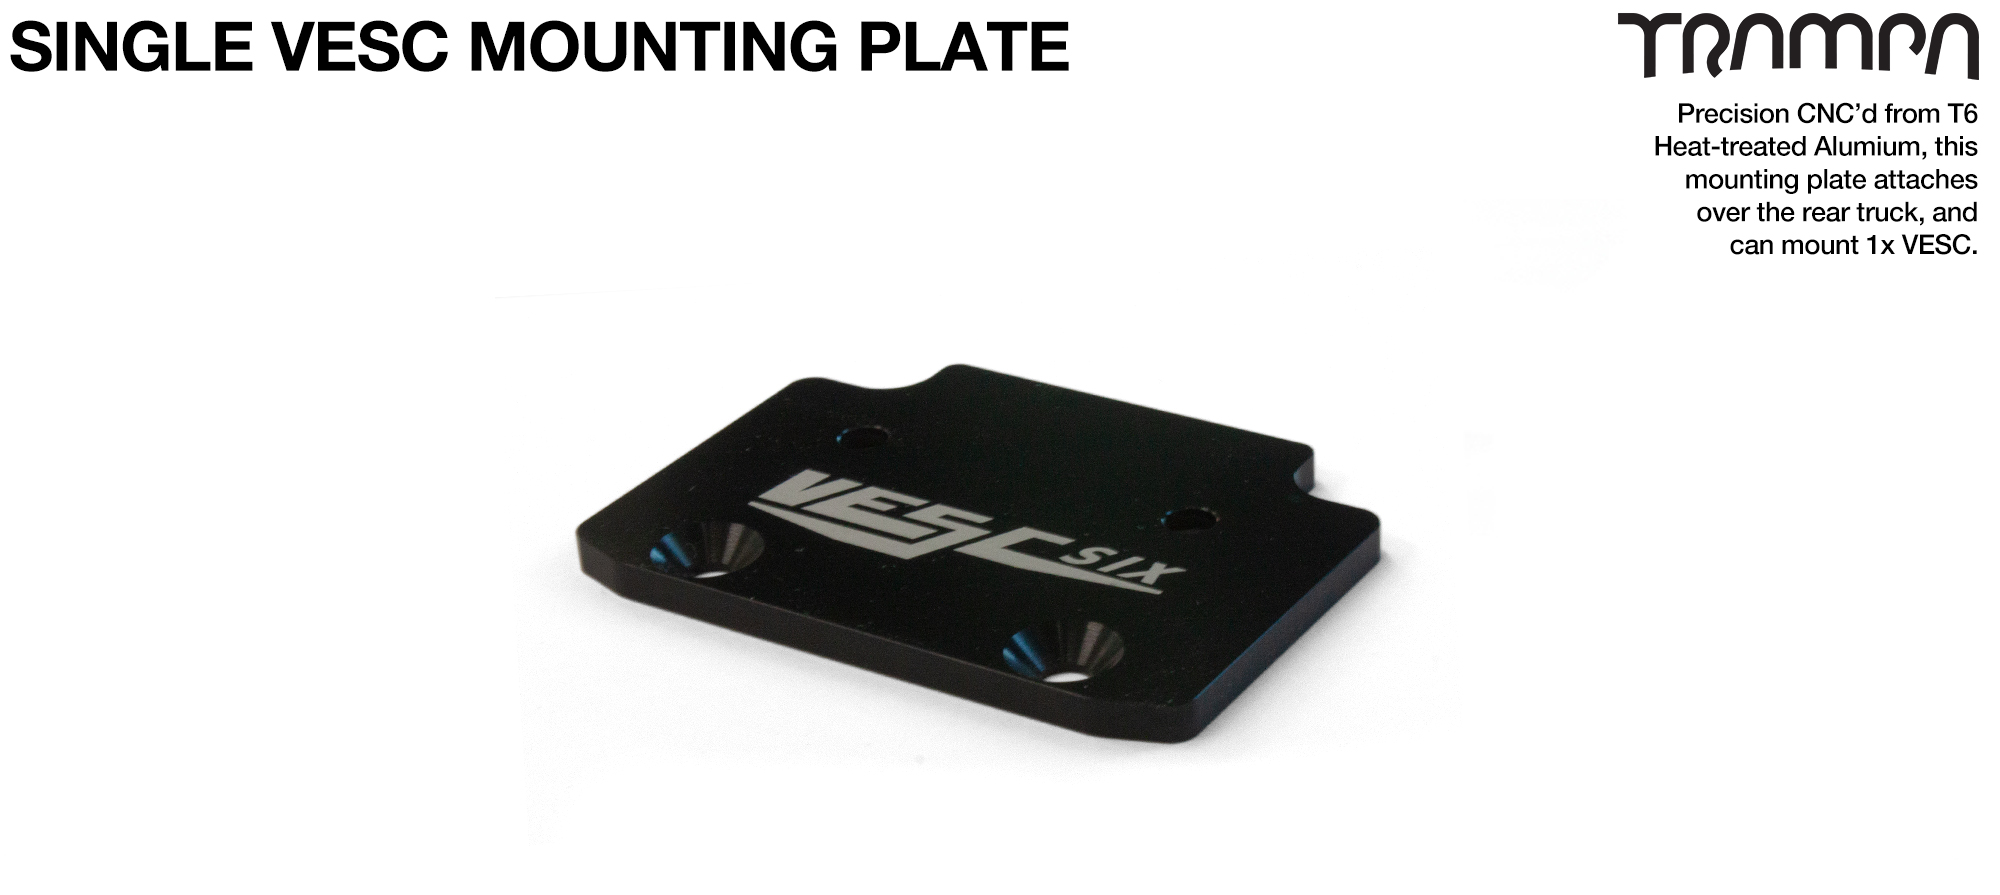 ALUMINIUM mounting Plate for Single VESC